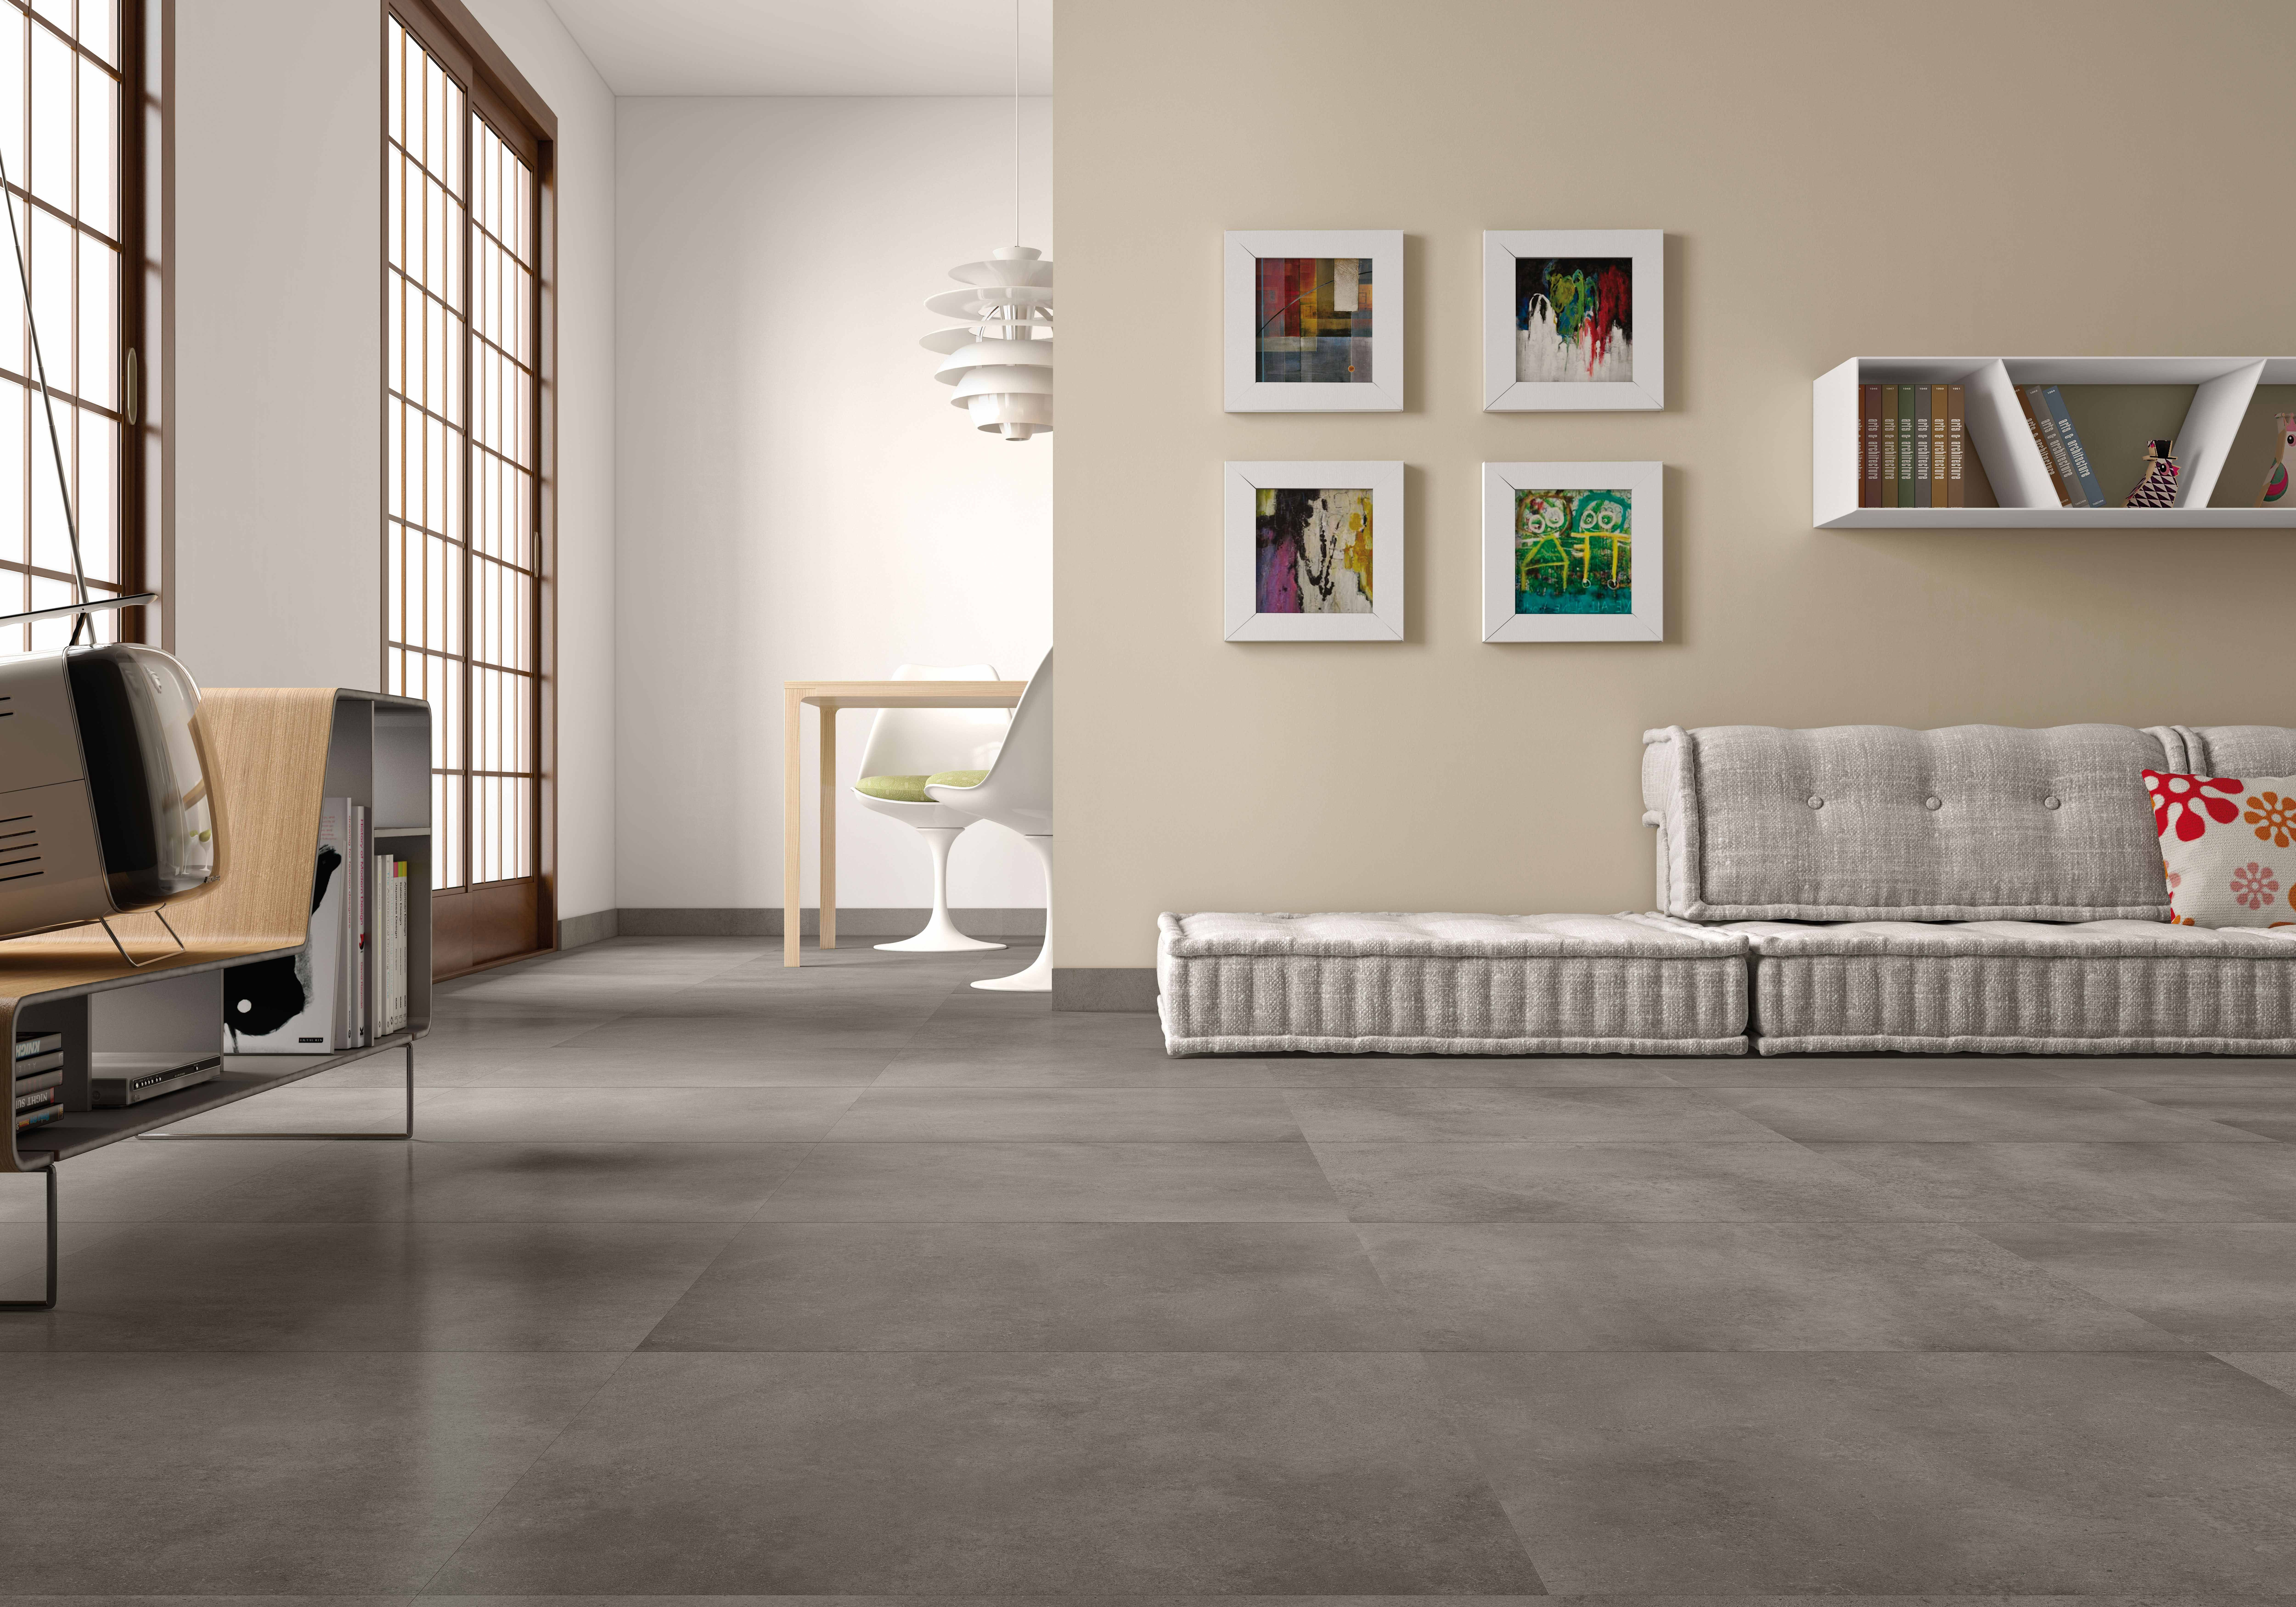 Grs crame colorado inspiration zen pinterest catalog and ceramo tiles perth aims to offer the wa tiles perth buying community a refreshing and innovative tiles buying experience dailygadgetfo Choice Image